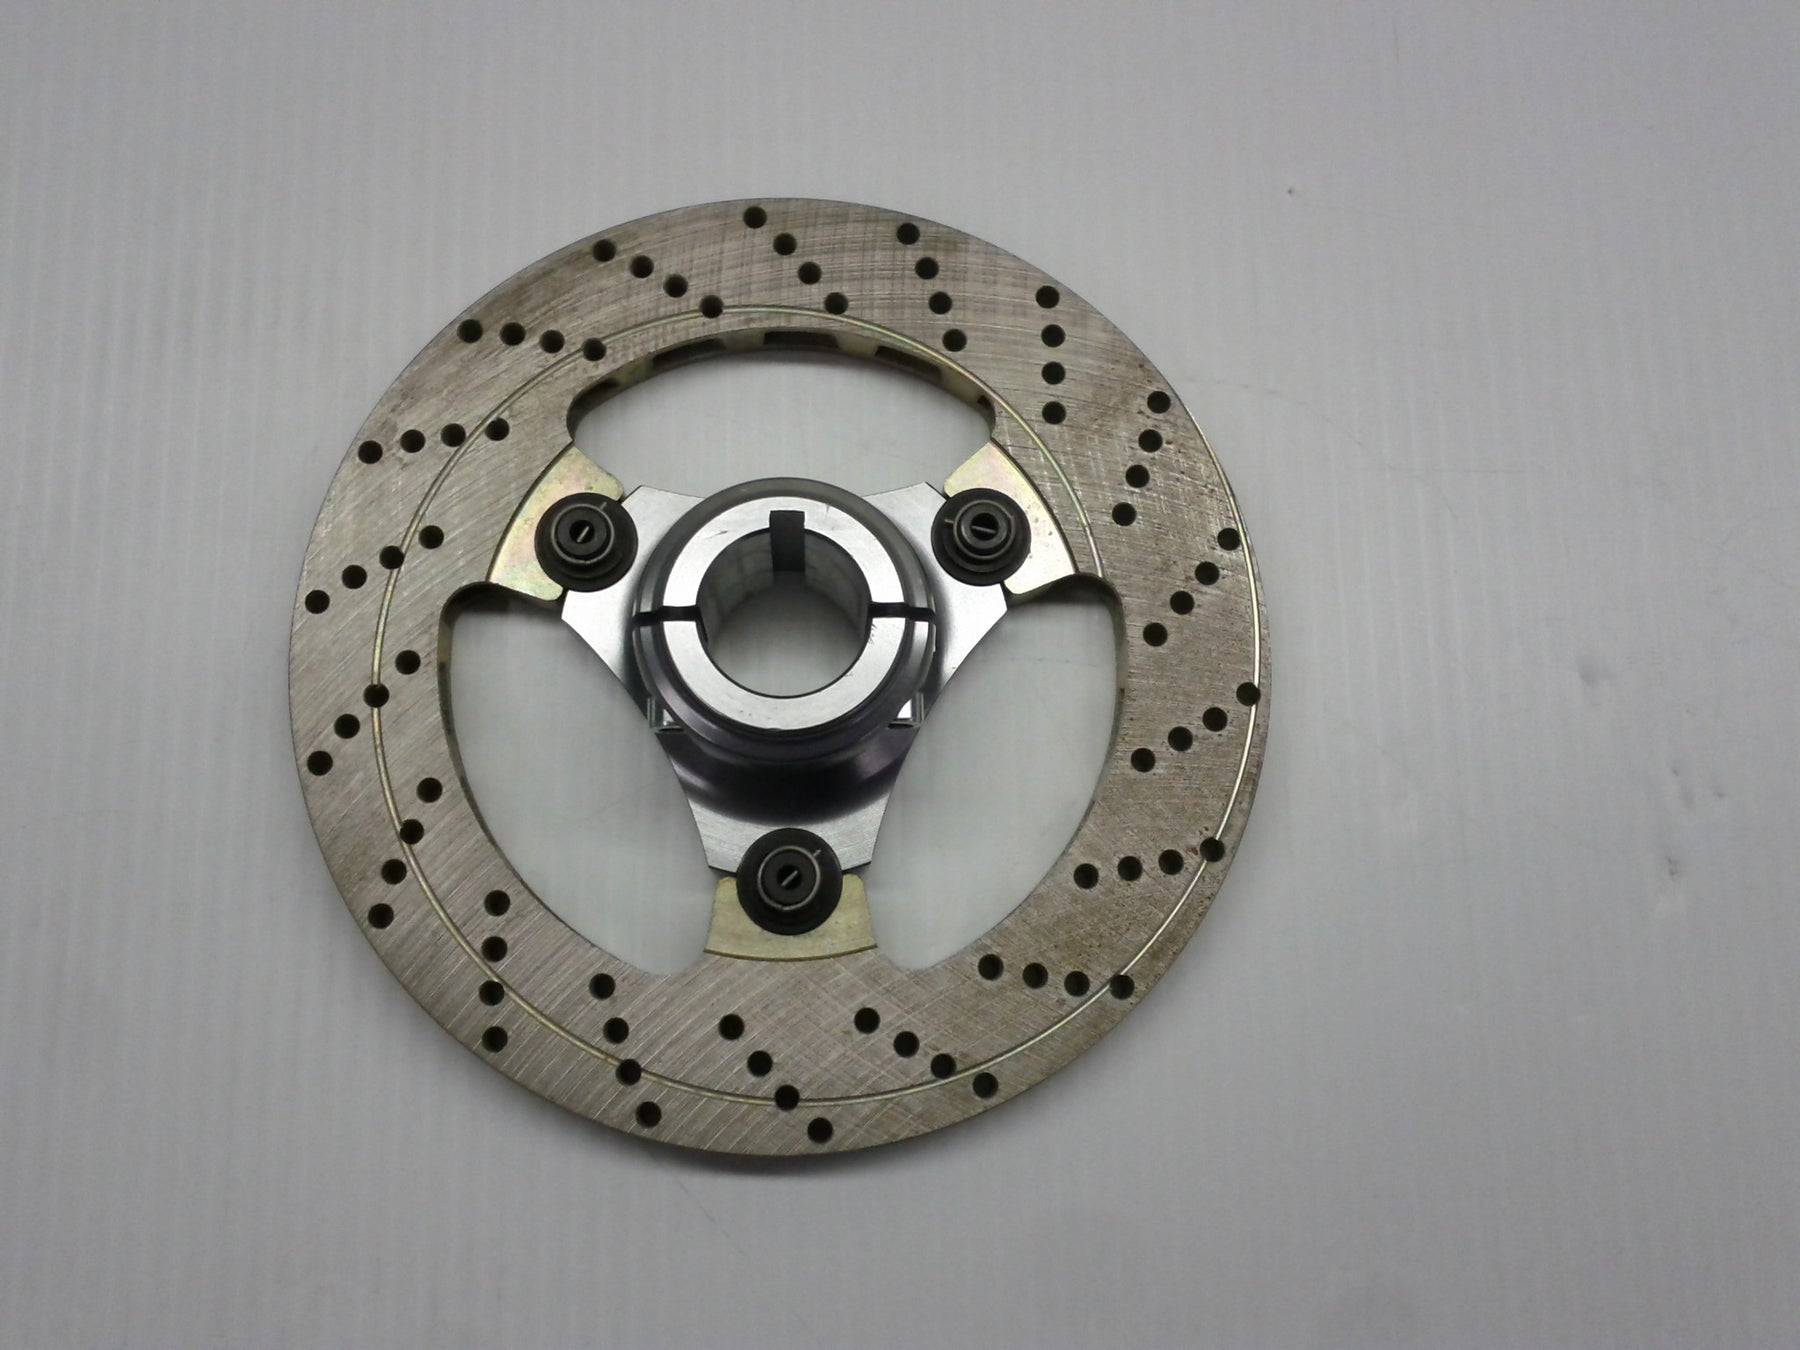 Complete 30mm Floating 3-Point Rotor Assembly (188x12.5)